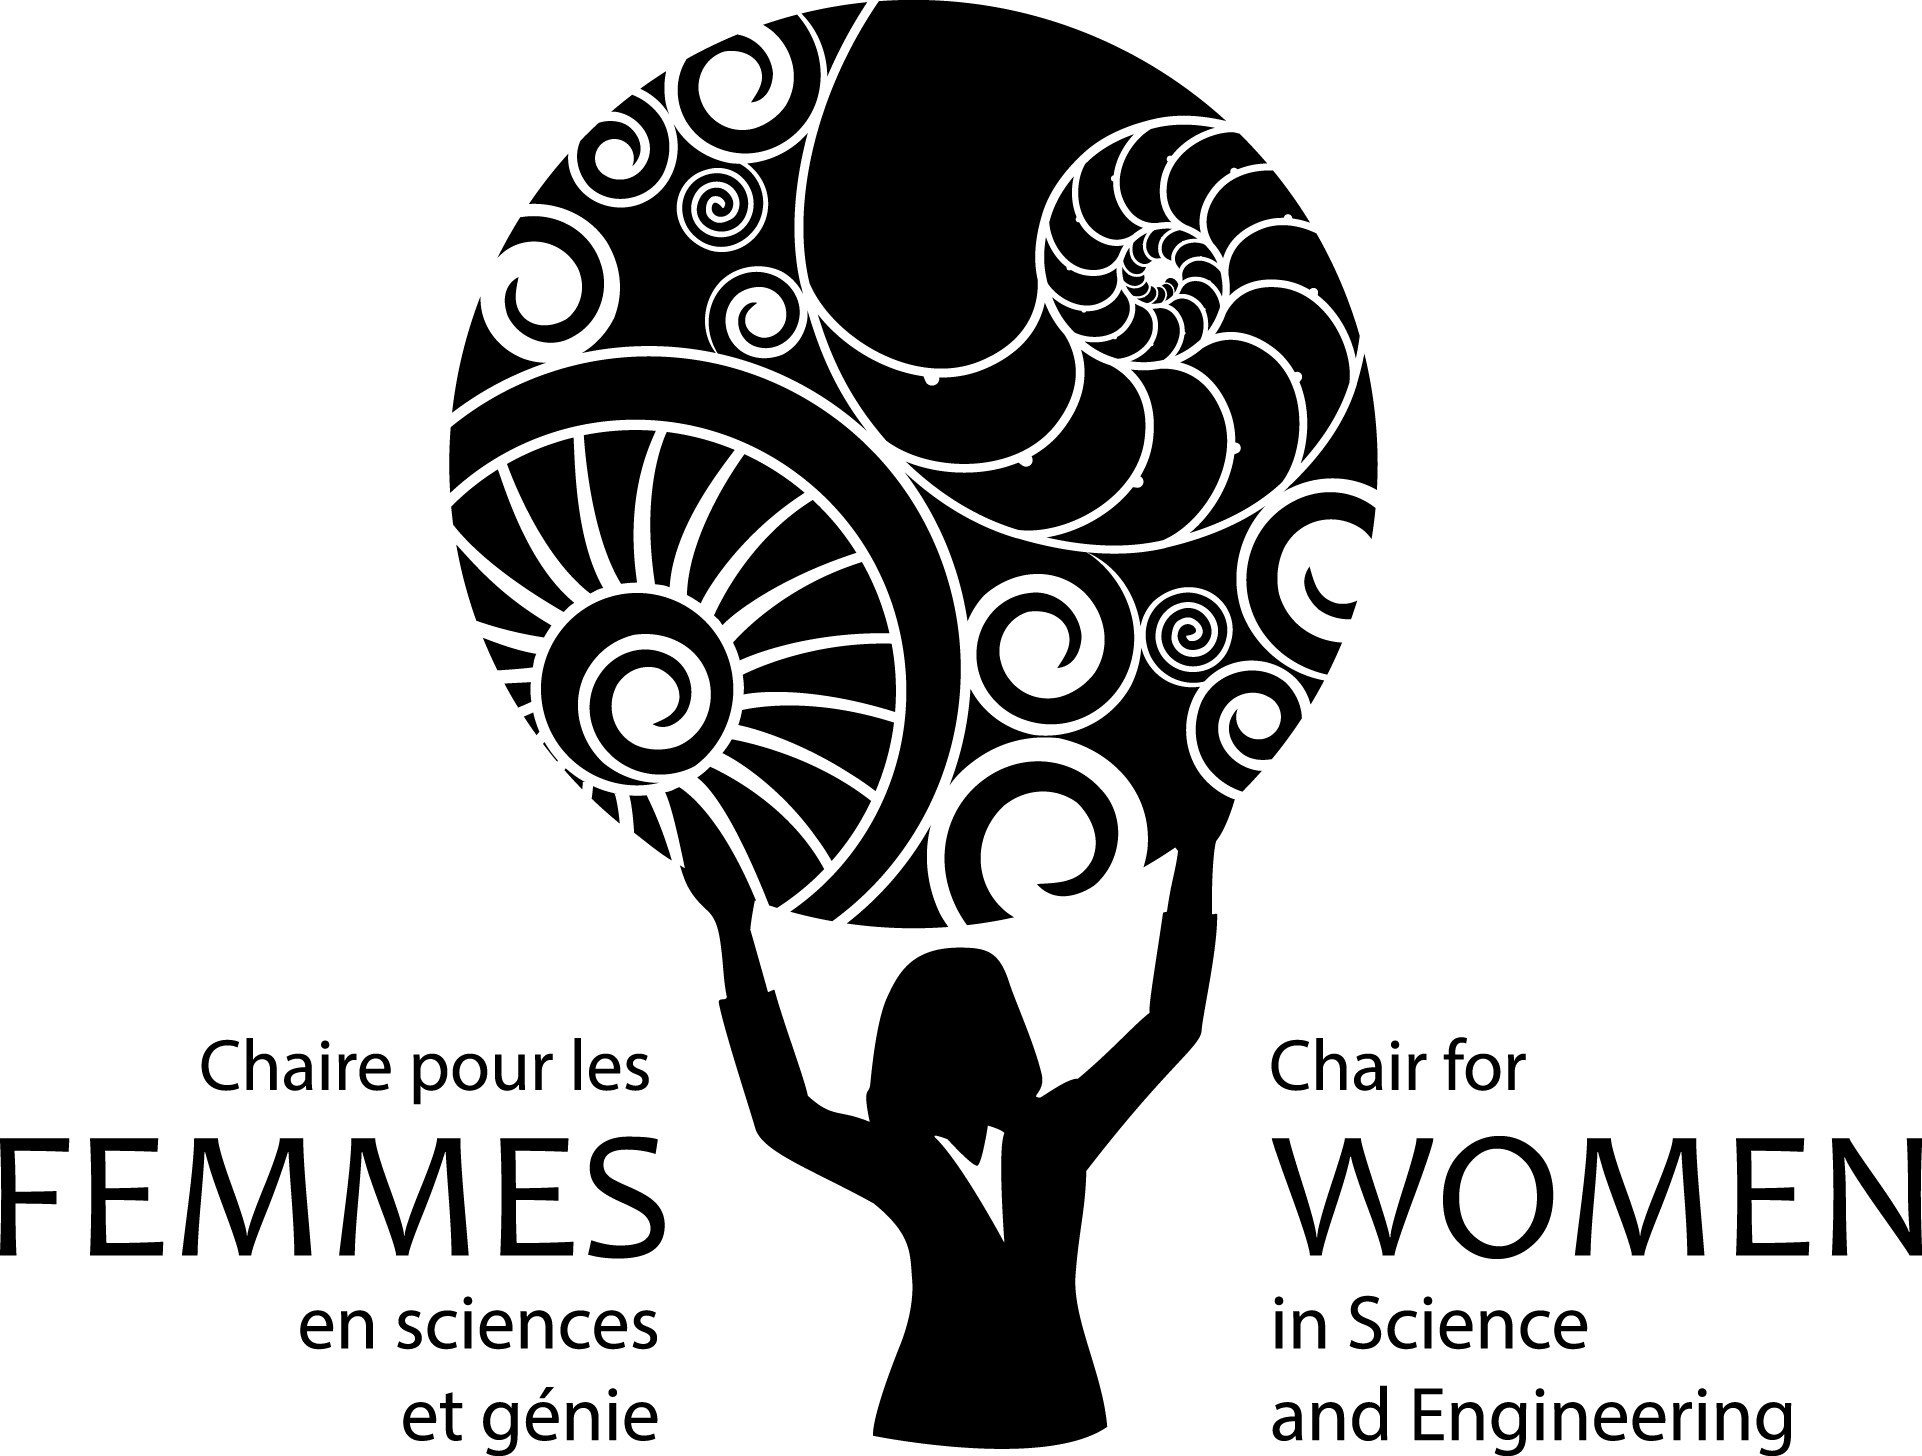 Ontario Chair for Women in Science and Engineering